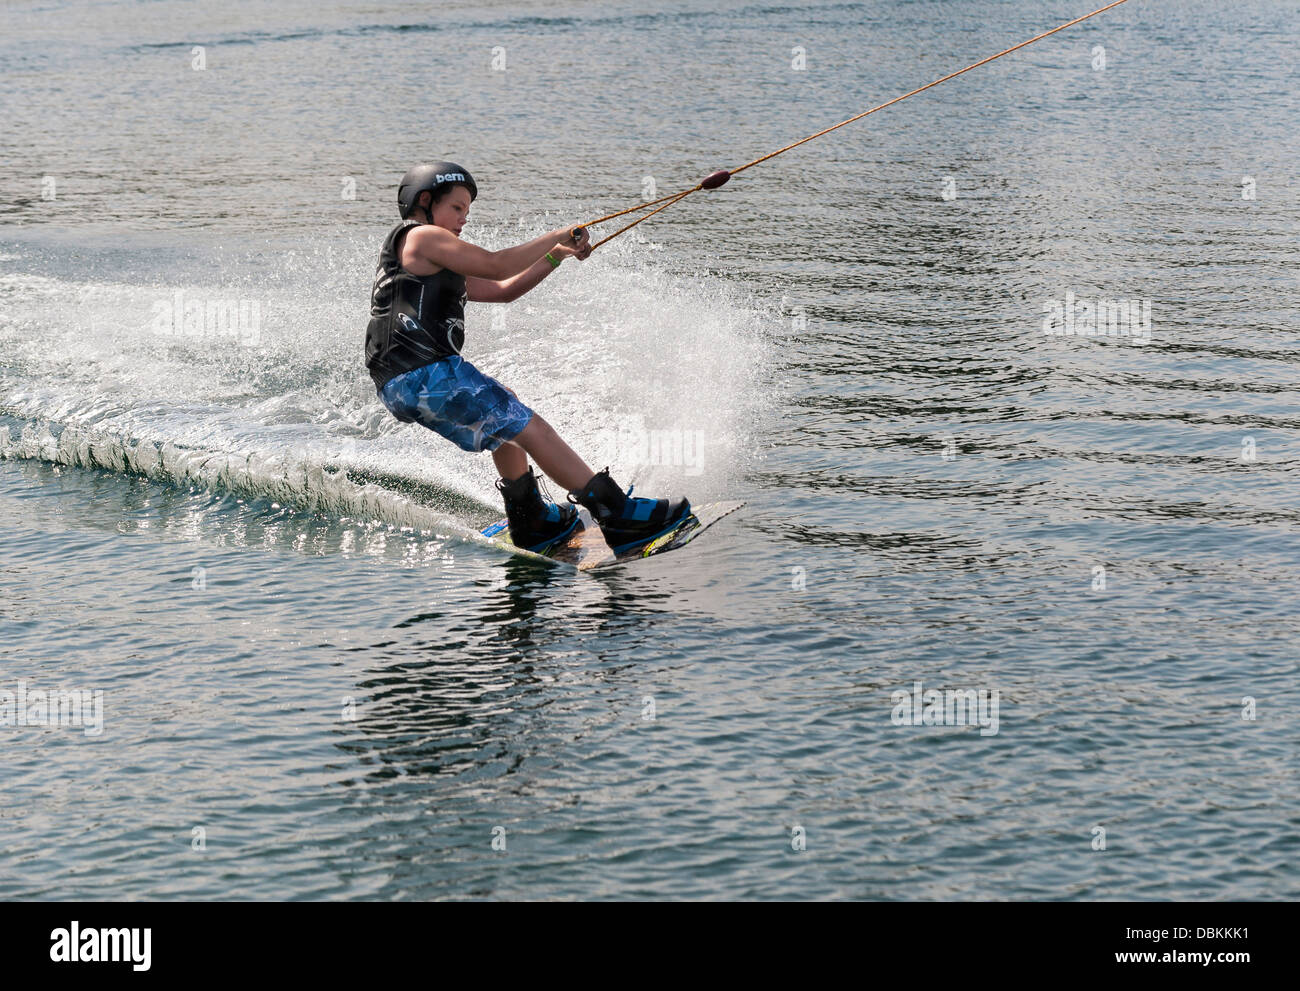 Wakeboarding at the Festival Leisure Wakeboard Park in Basildon. - Stock Image